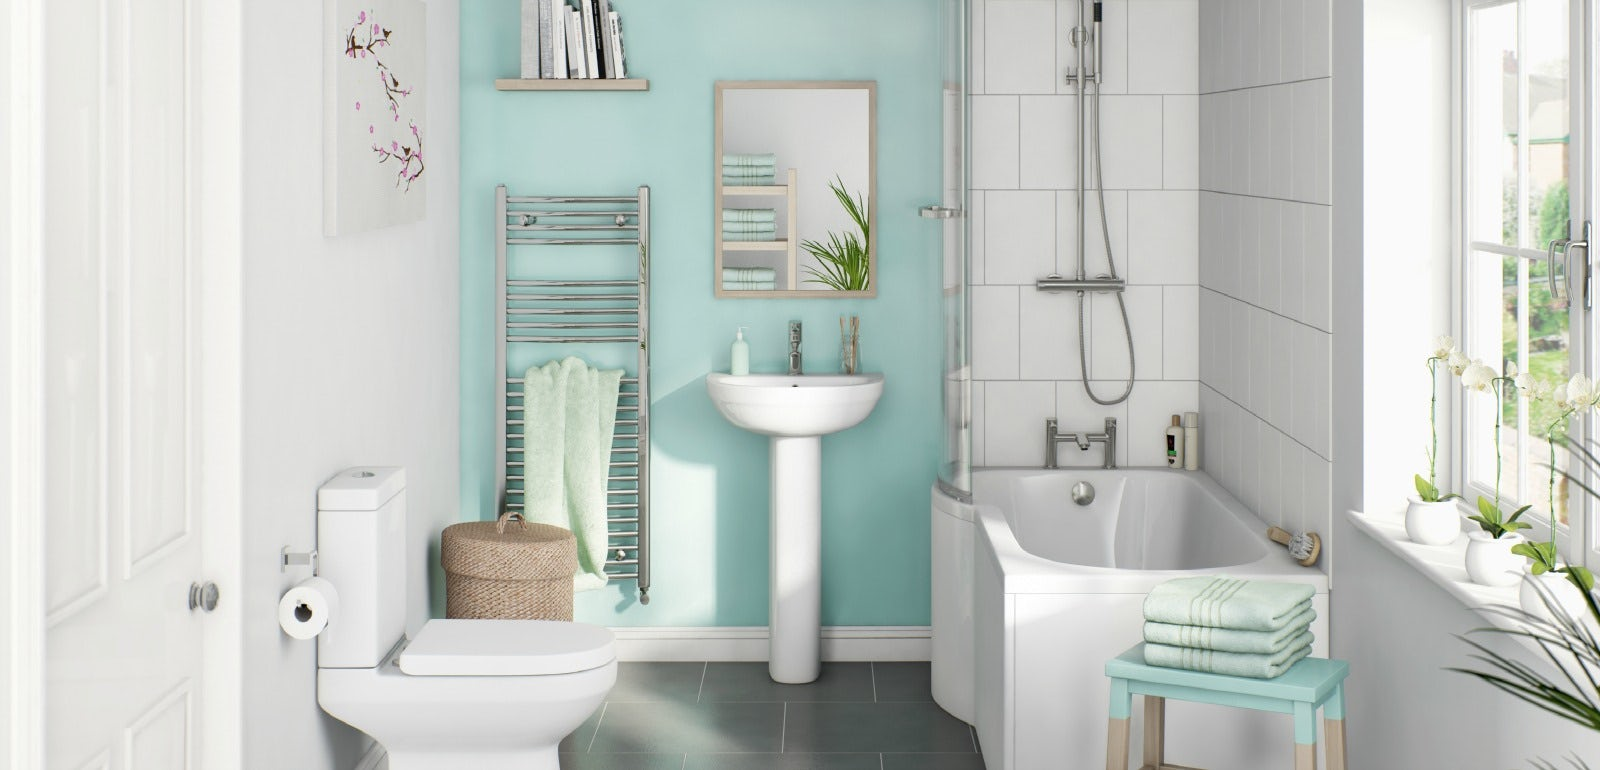 6 tips to enhance natural light in your bathroom